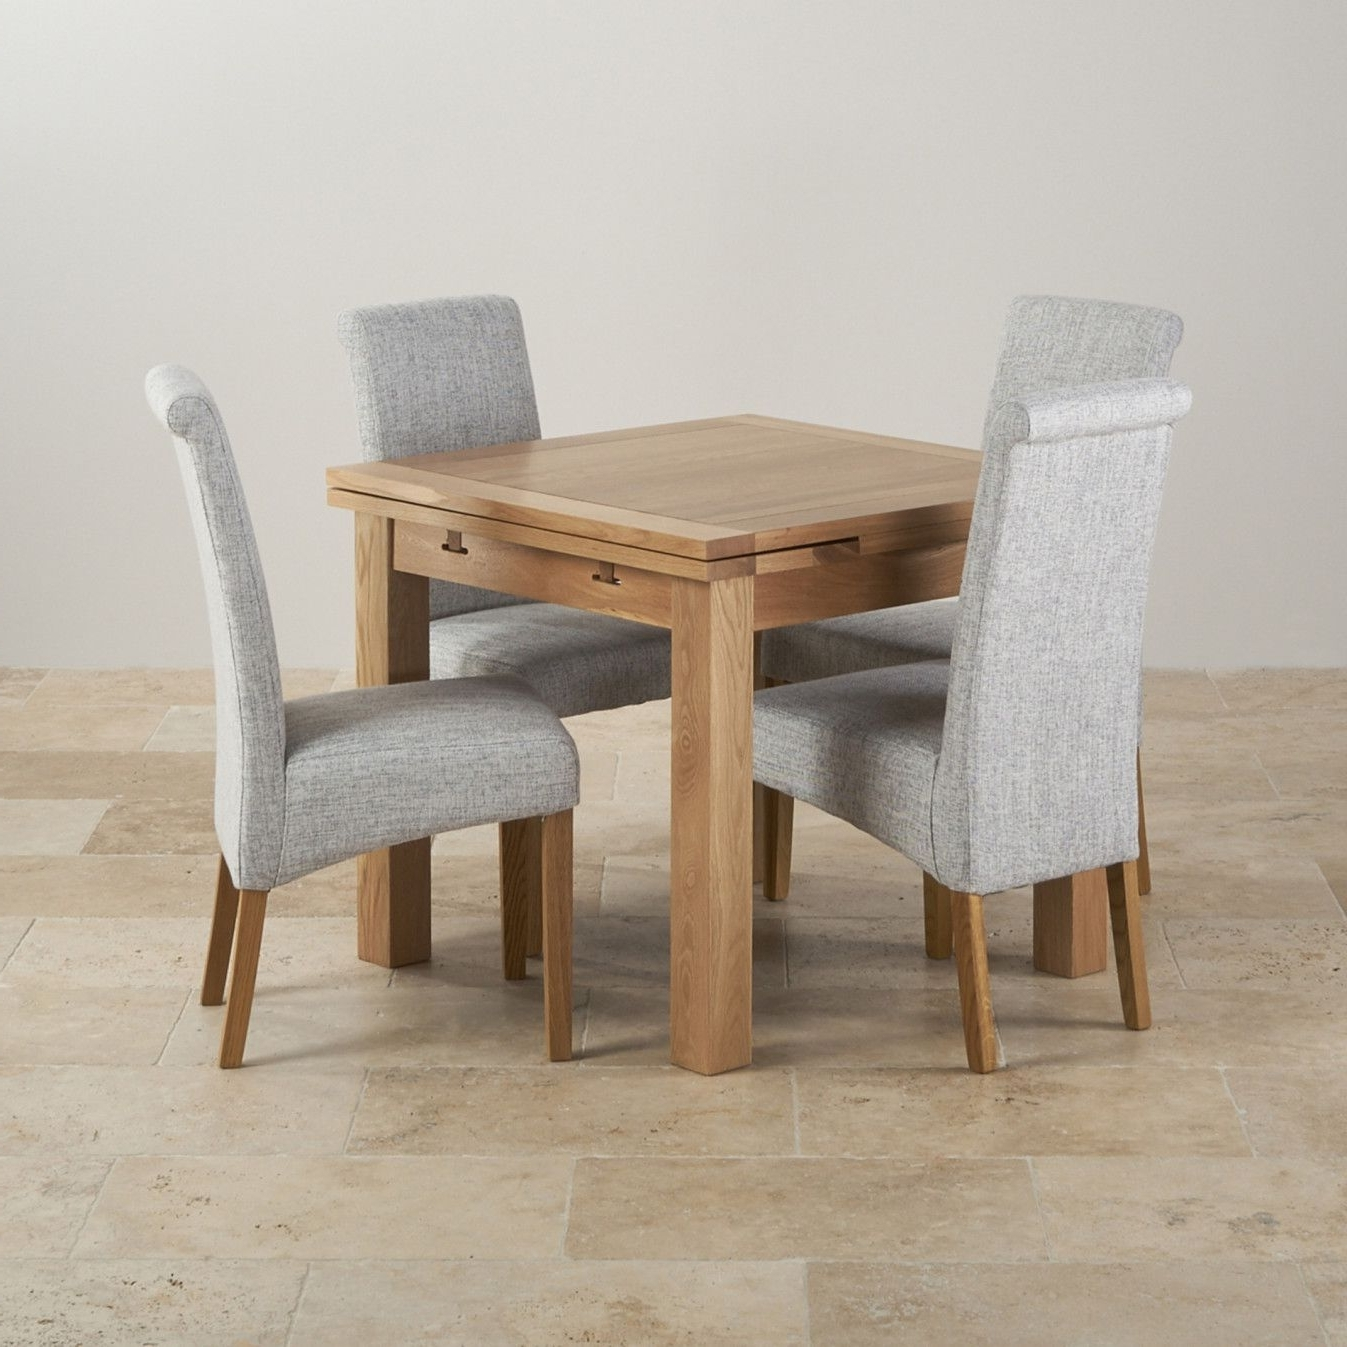 Extending Oak Dining Tables And Chairs intended for Latest 2018 Extending Oak Dining Table And Chairs - Rustic Modern Furniture